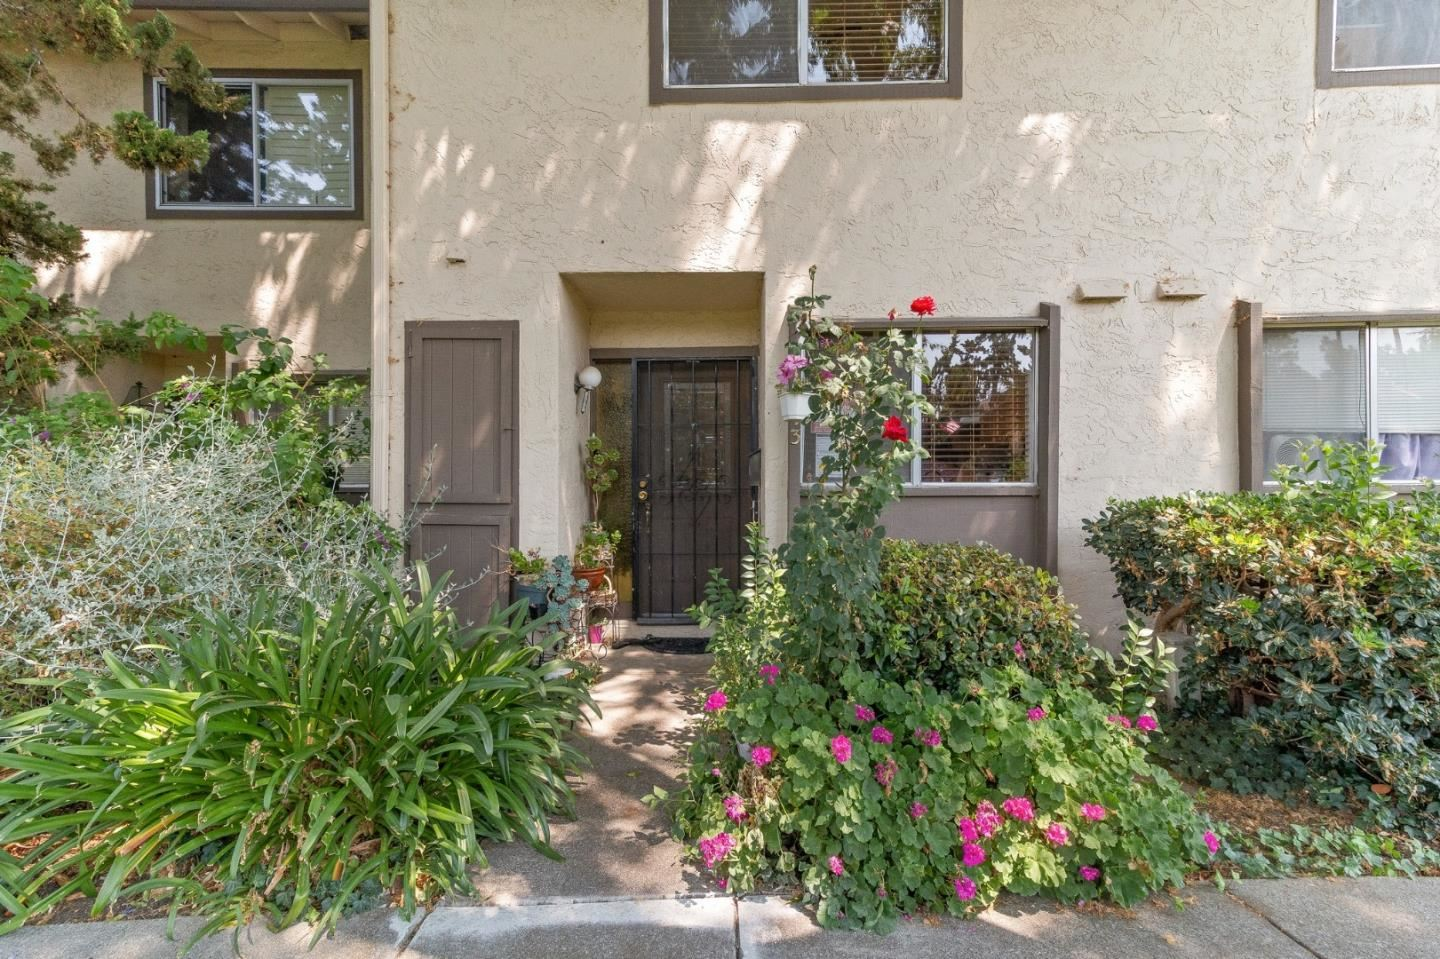 Photo for 1943 Landess AVE, MILPITAS, CA 95035 (MLS # ML81808314)